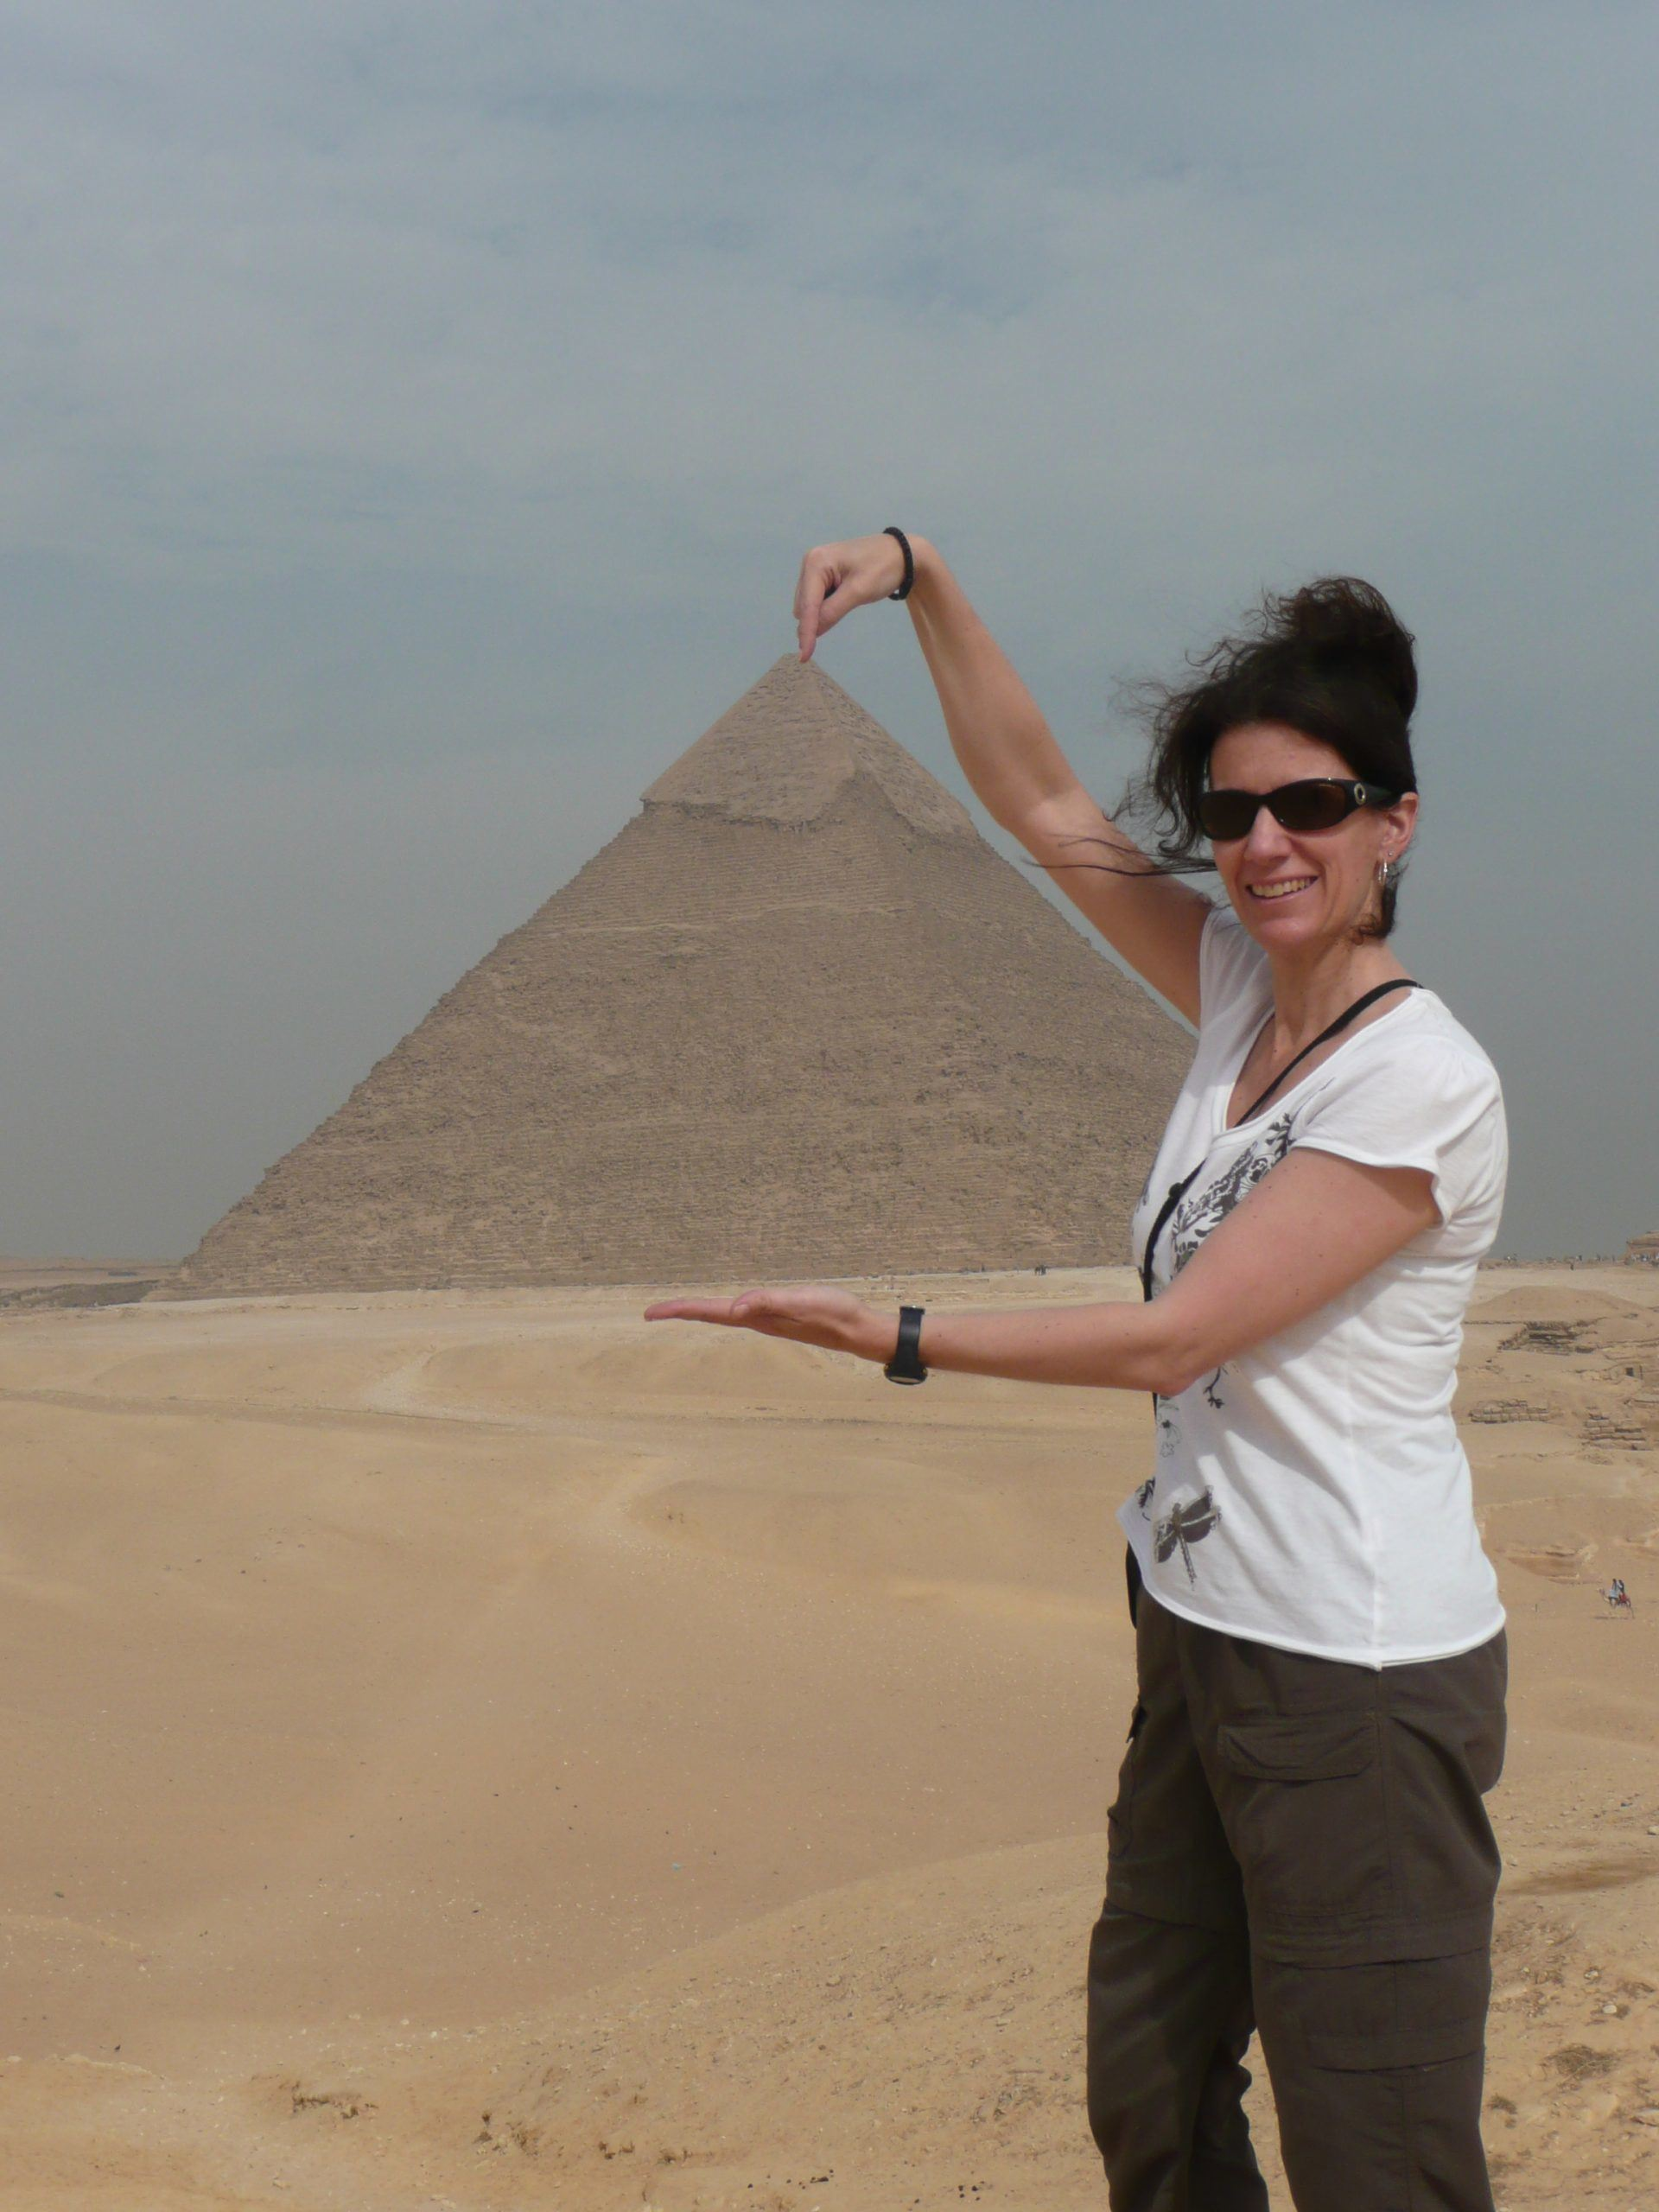 a female holding the giza pyramid between her hands while standing afar